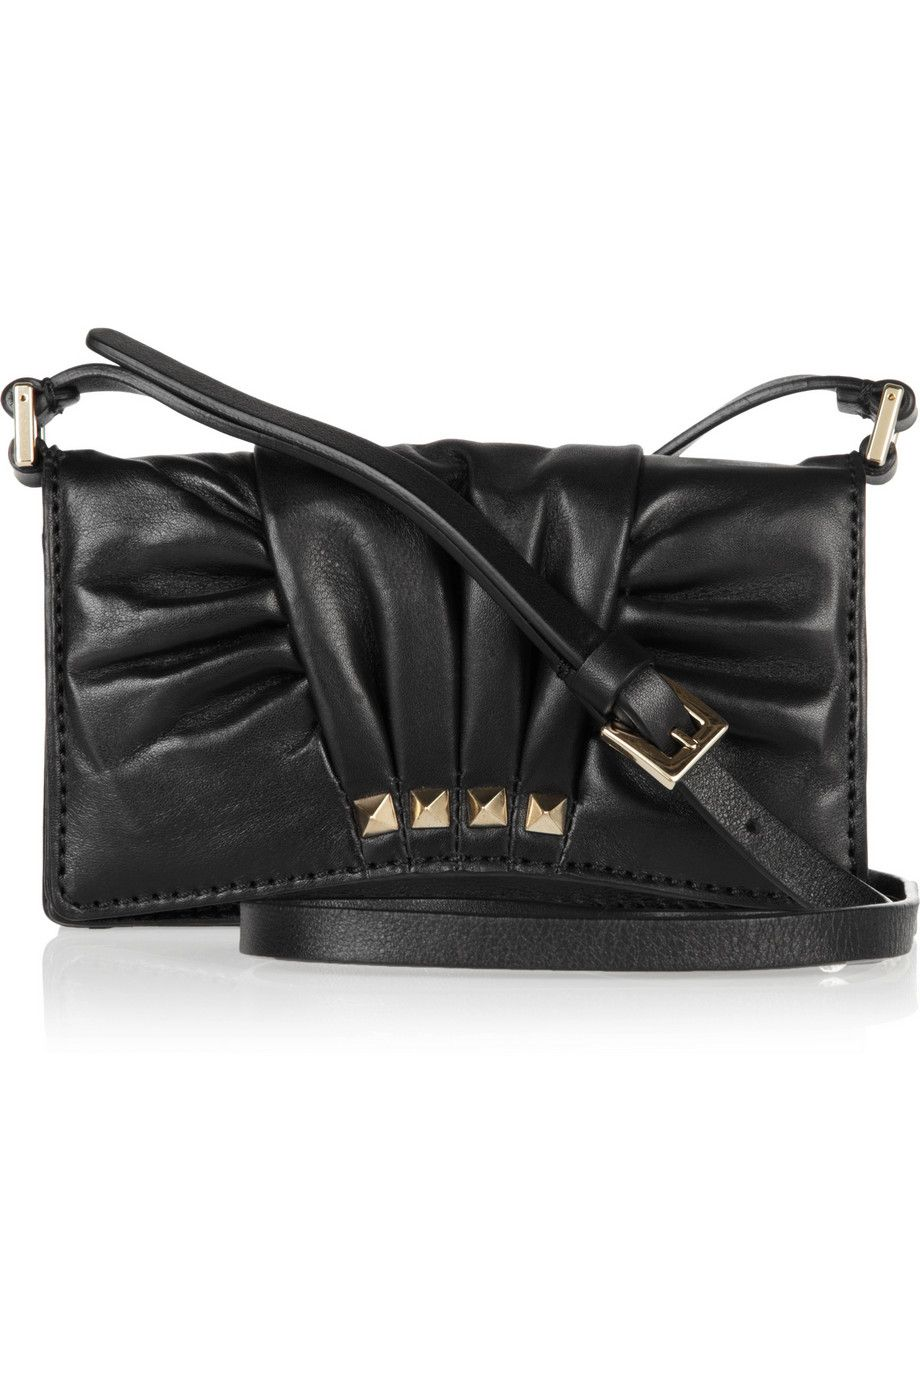 df94ca8d3f5ee Valentino Pleated leather mini shoulder bag - 45% Off Now at THE OUTNET